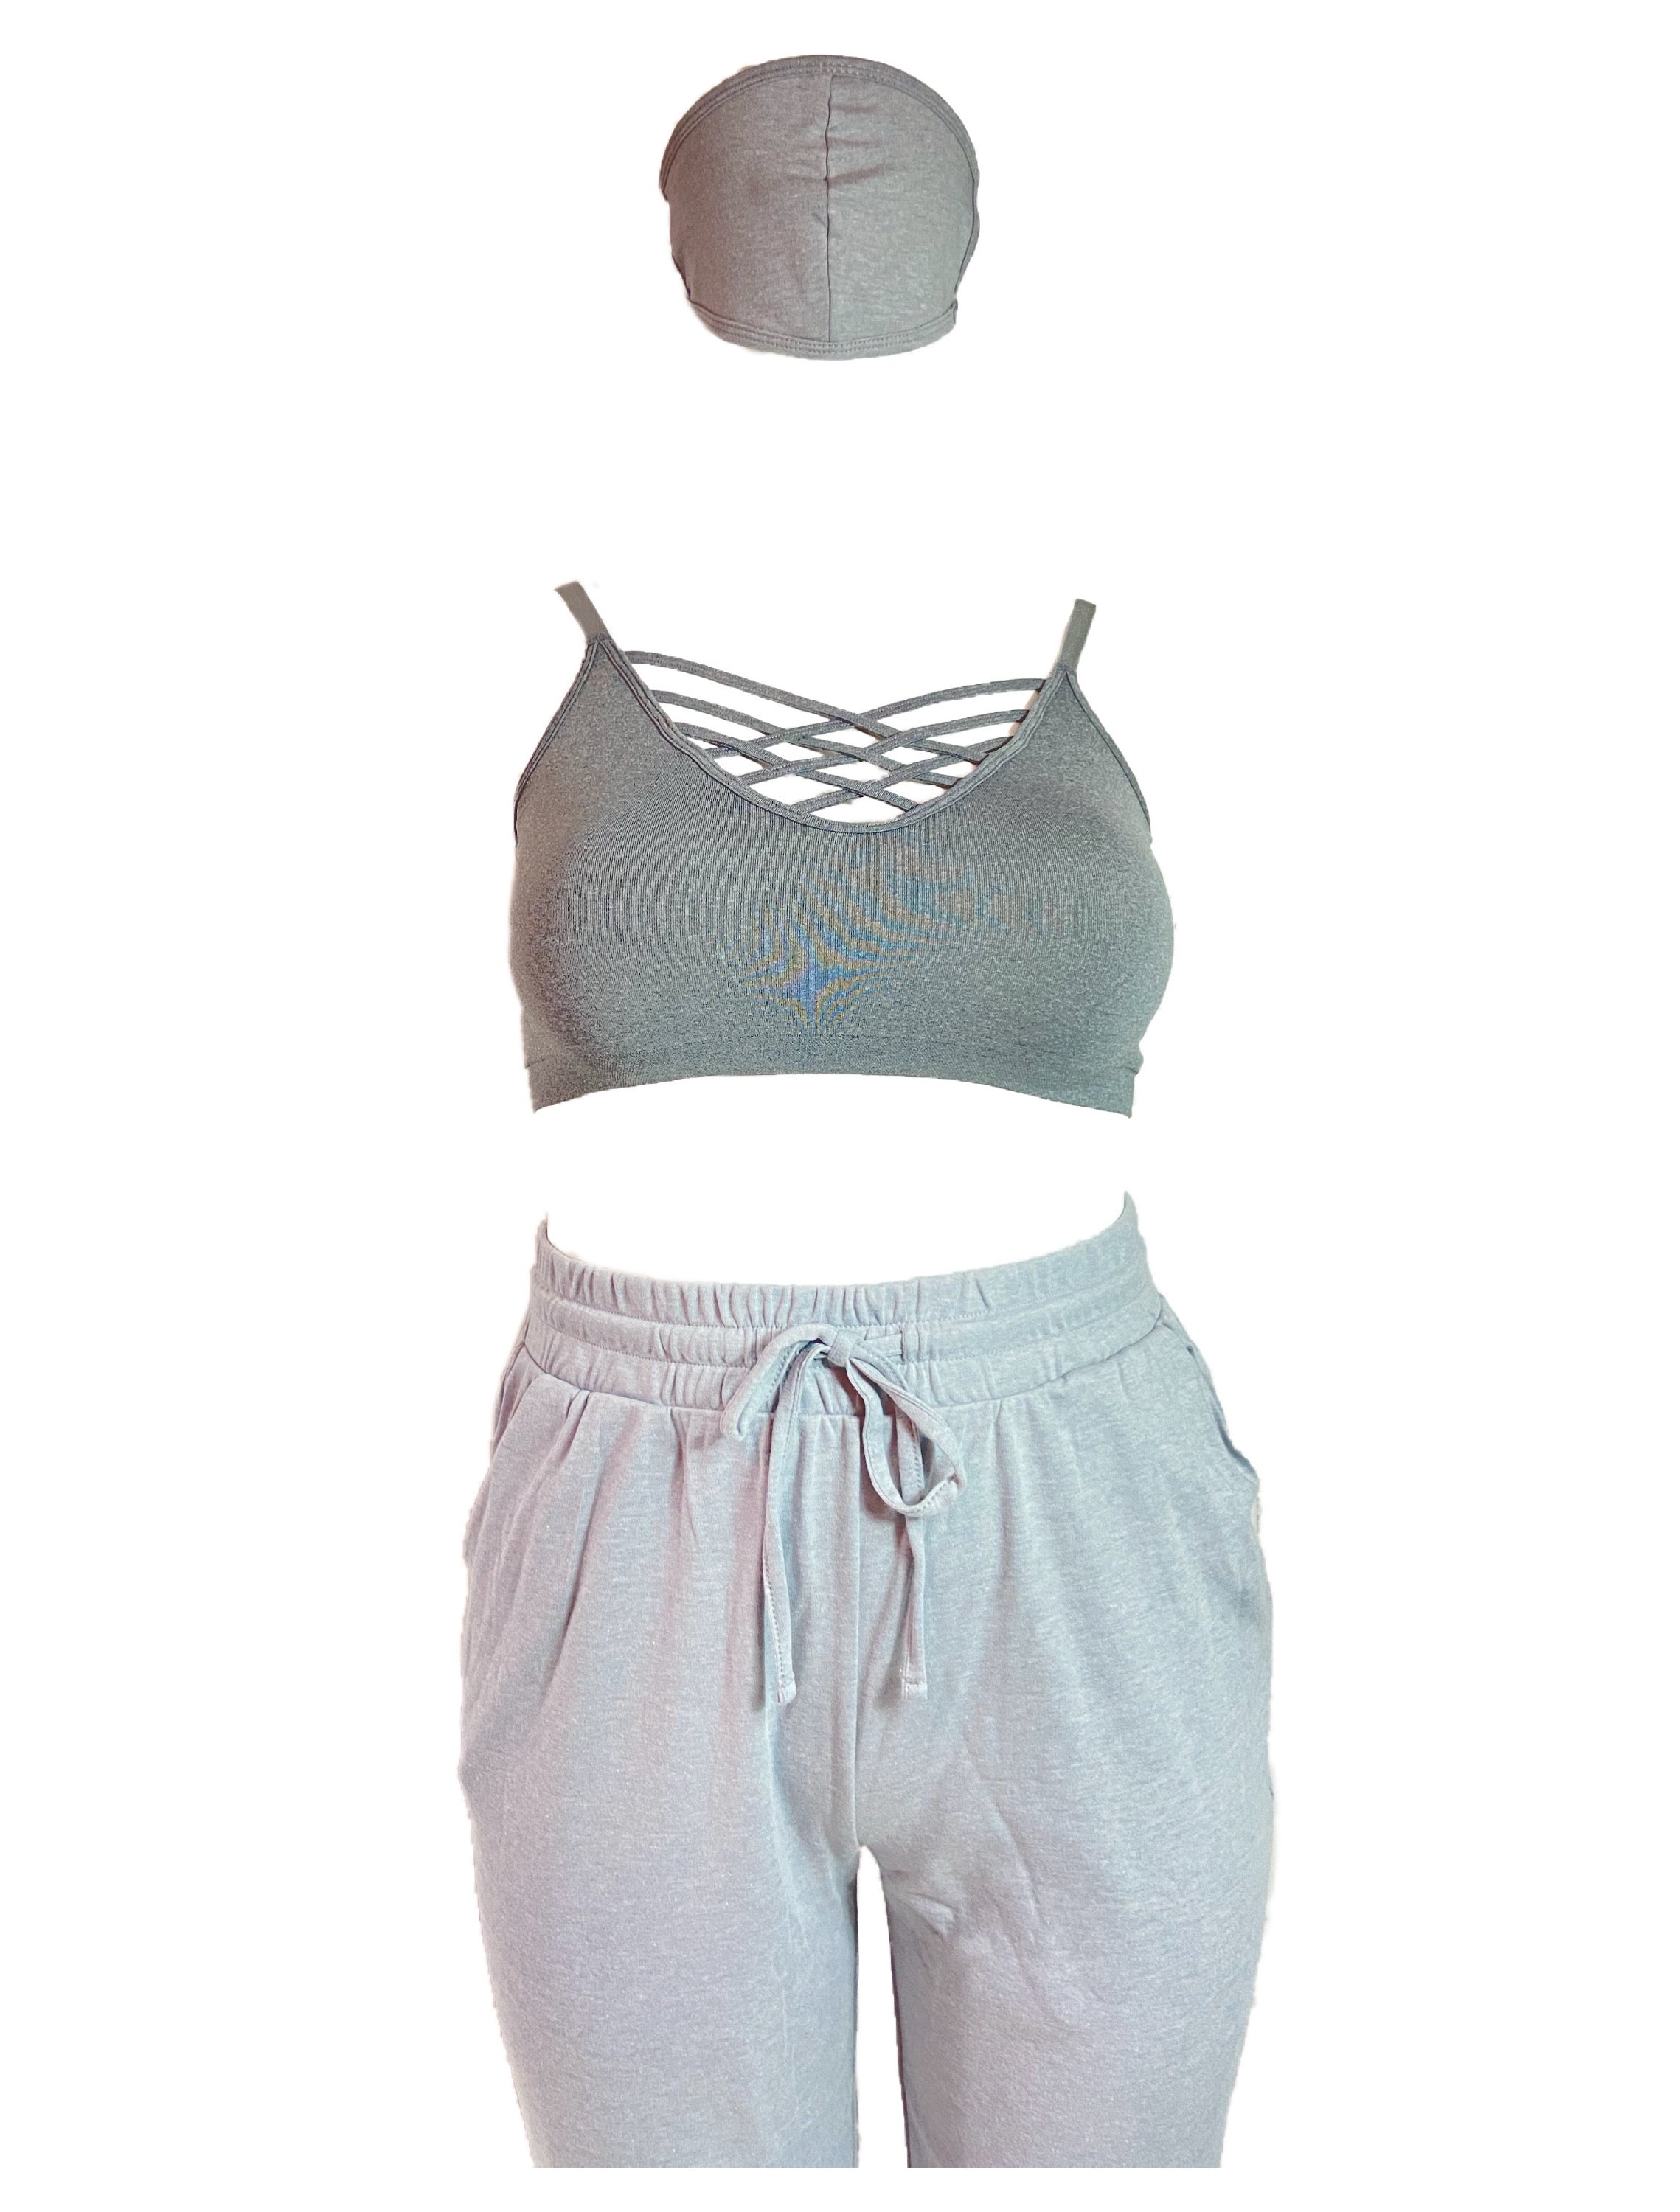 BODY BRALETTE - HEATHERED GRAY